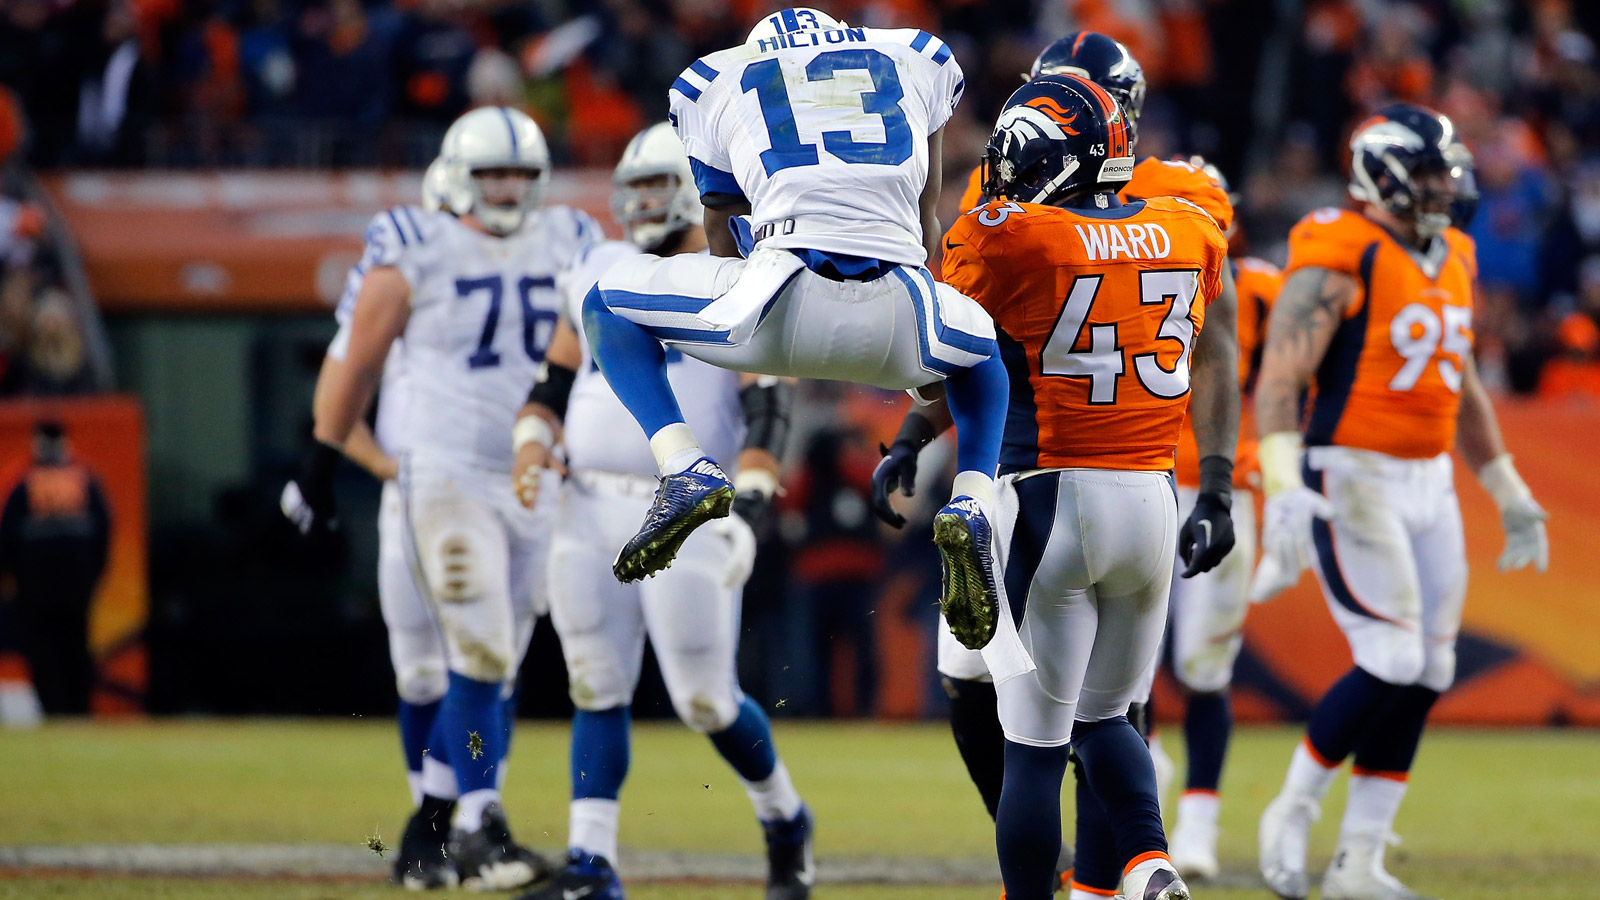 T.Y. Hilton #13 of the Indianapolis Colts reacts against the Denver Broncos during a 2015 AFC Divisional Playoff game at Sports Authority Field at Mile High on January 11, 2015 in Denver, Colorado. (Photo by Doug Pensinger/Getty Images)